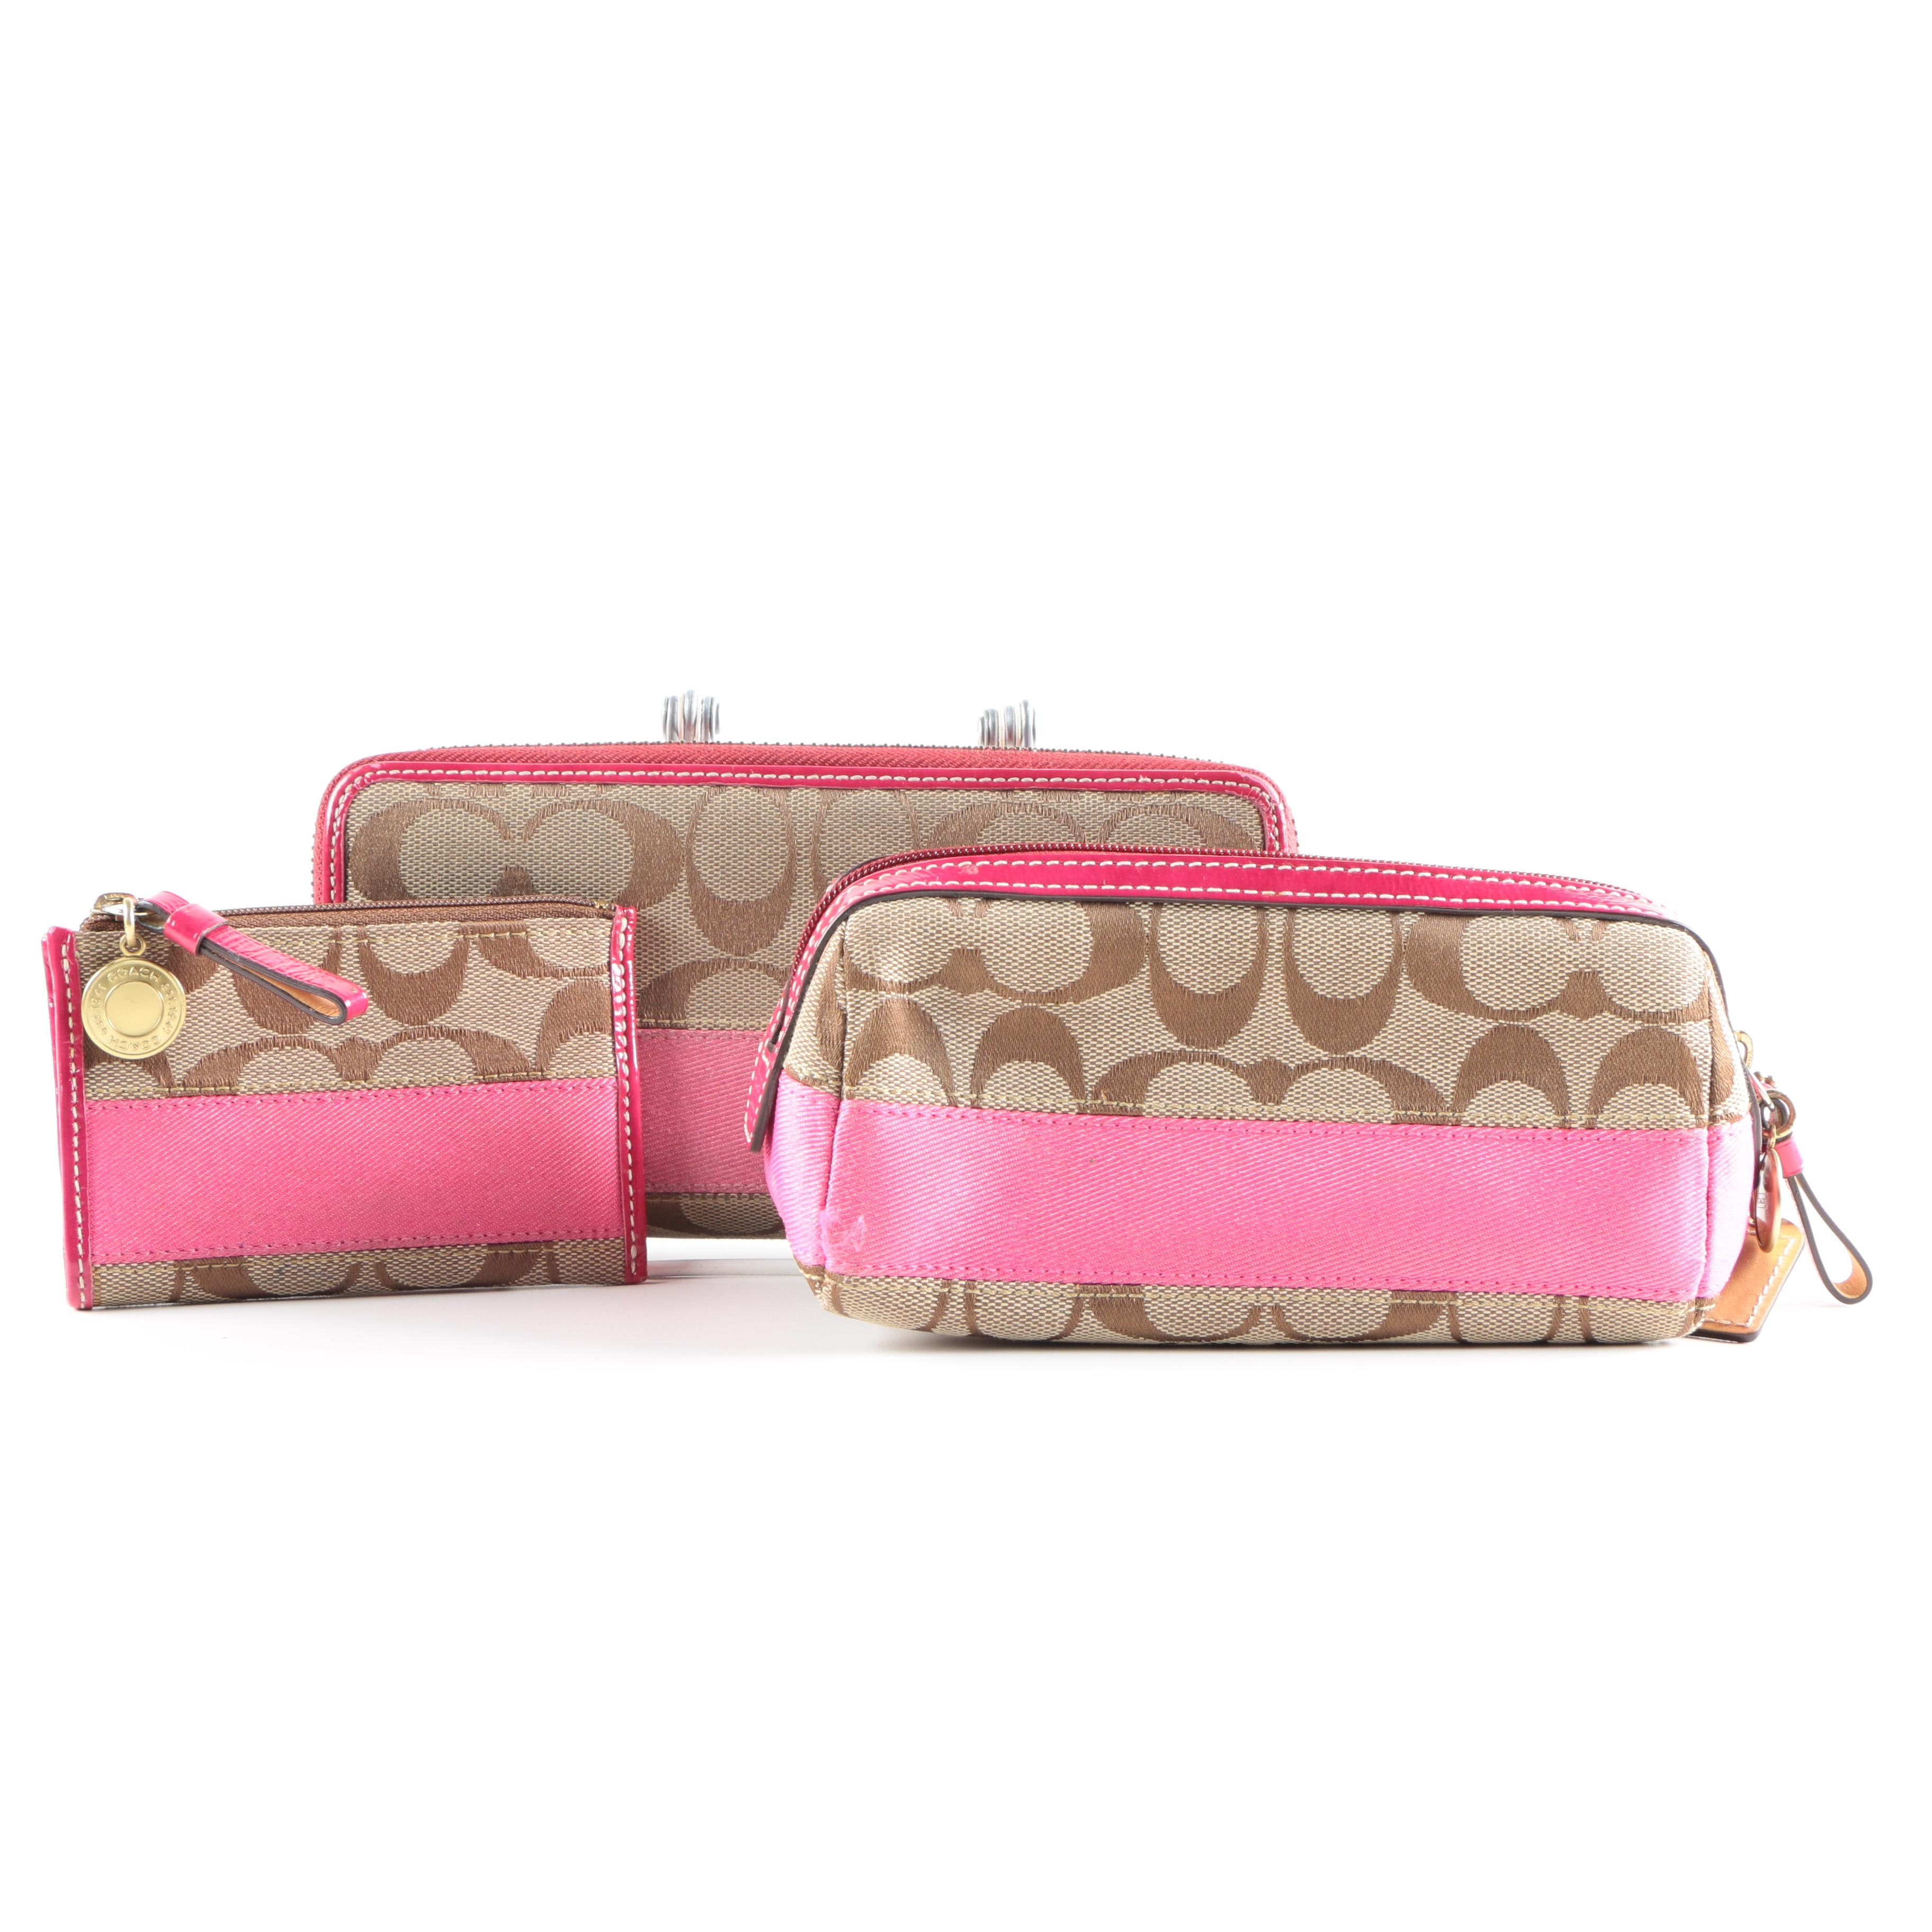 Coach Wallets and Cosmetic bag